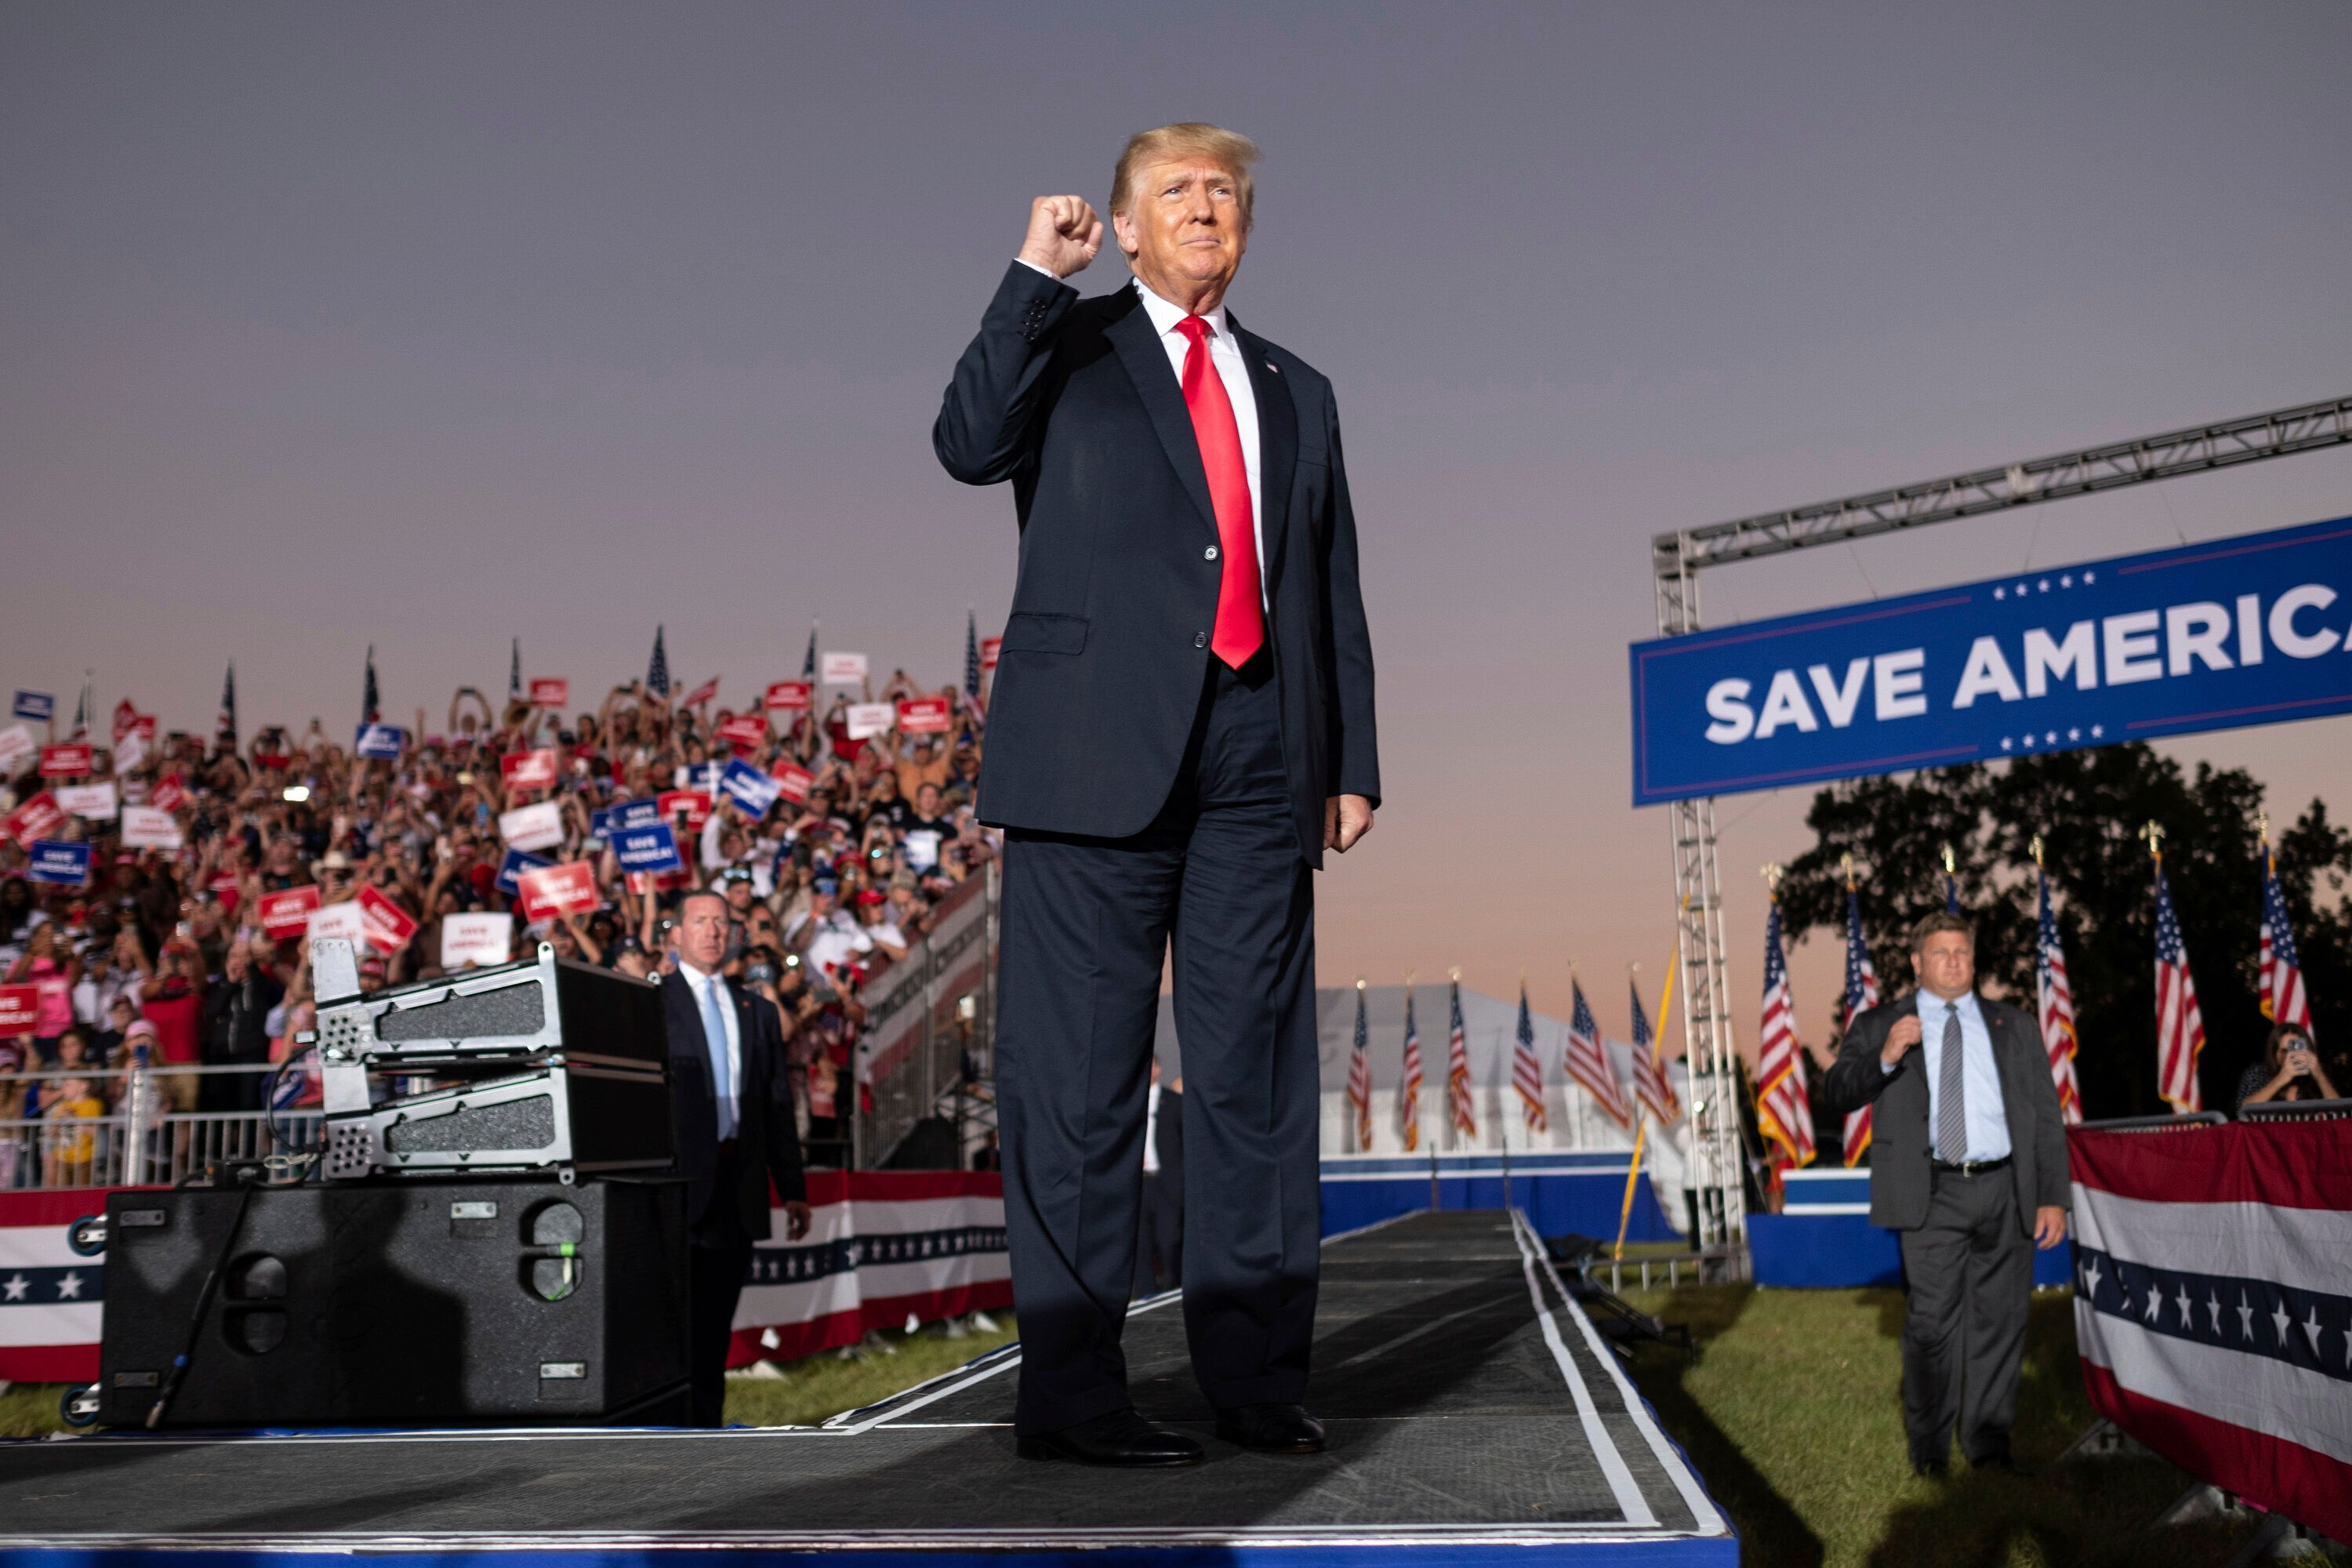 Former President Donald Trump greets supporters during his Save America rally in Perry, Georgia, on Sept. 25.